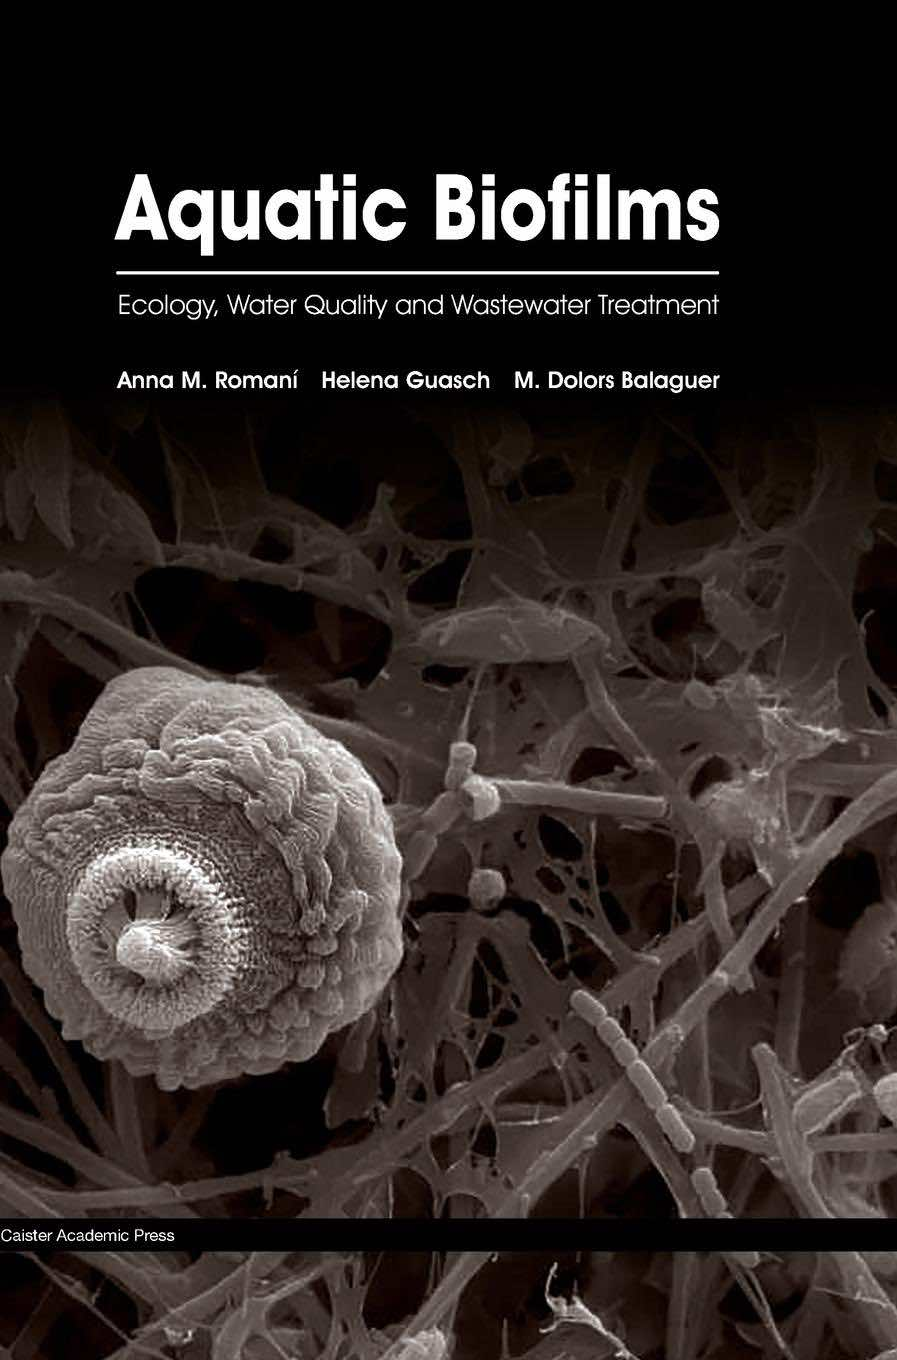 Aquatic Biofilms: Ecology, Water Quality and Wastewater Treatment